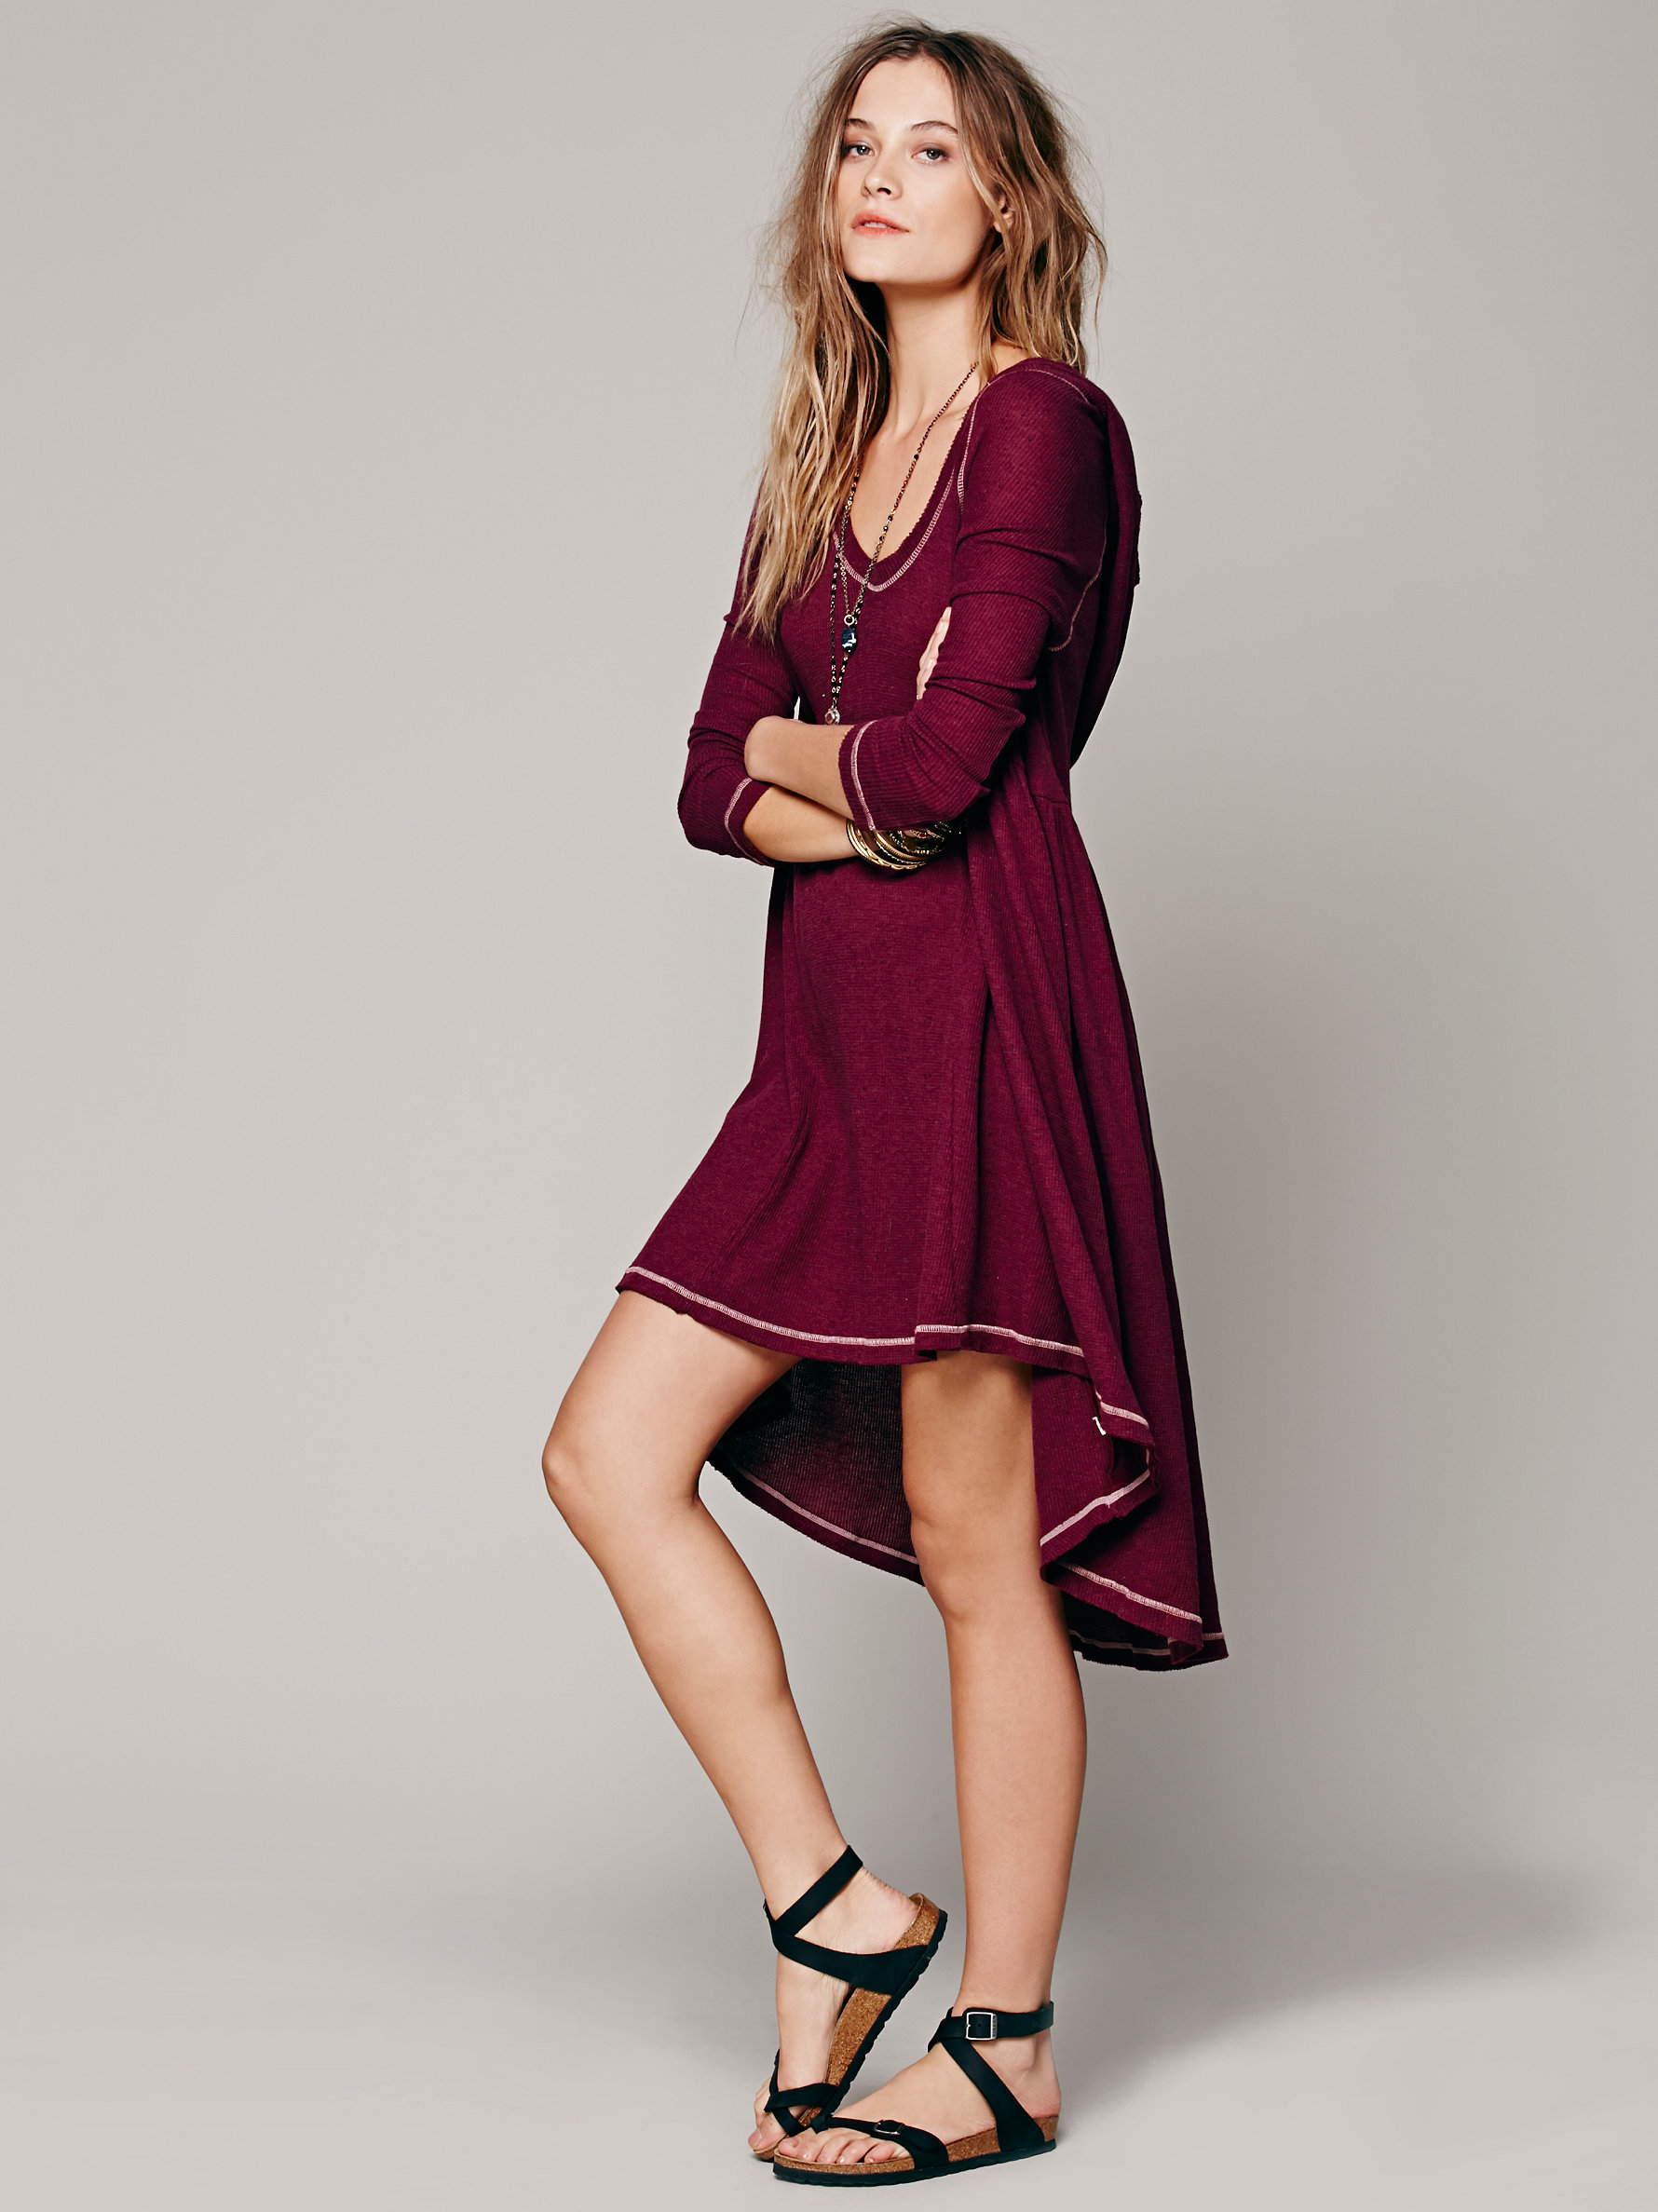 Free People Comfy Hooded Dress | Fancy Friday - The Cost of Comfort - Cute Loungewear